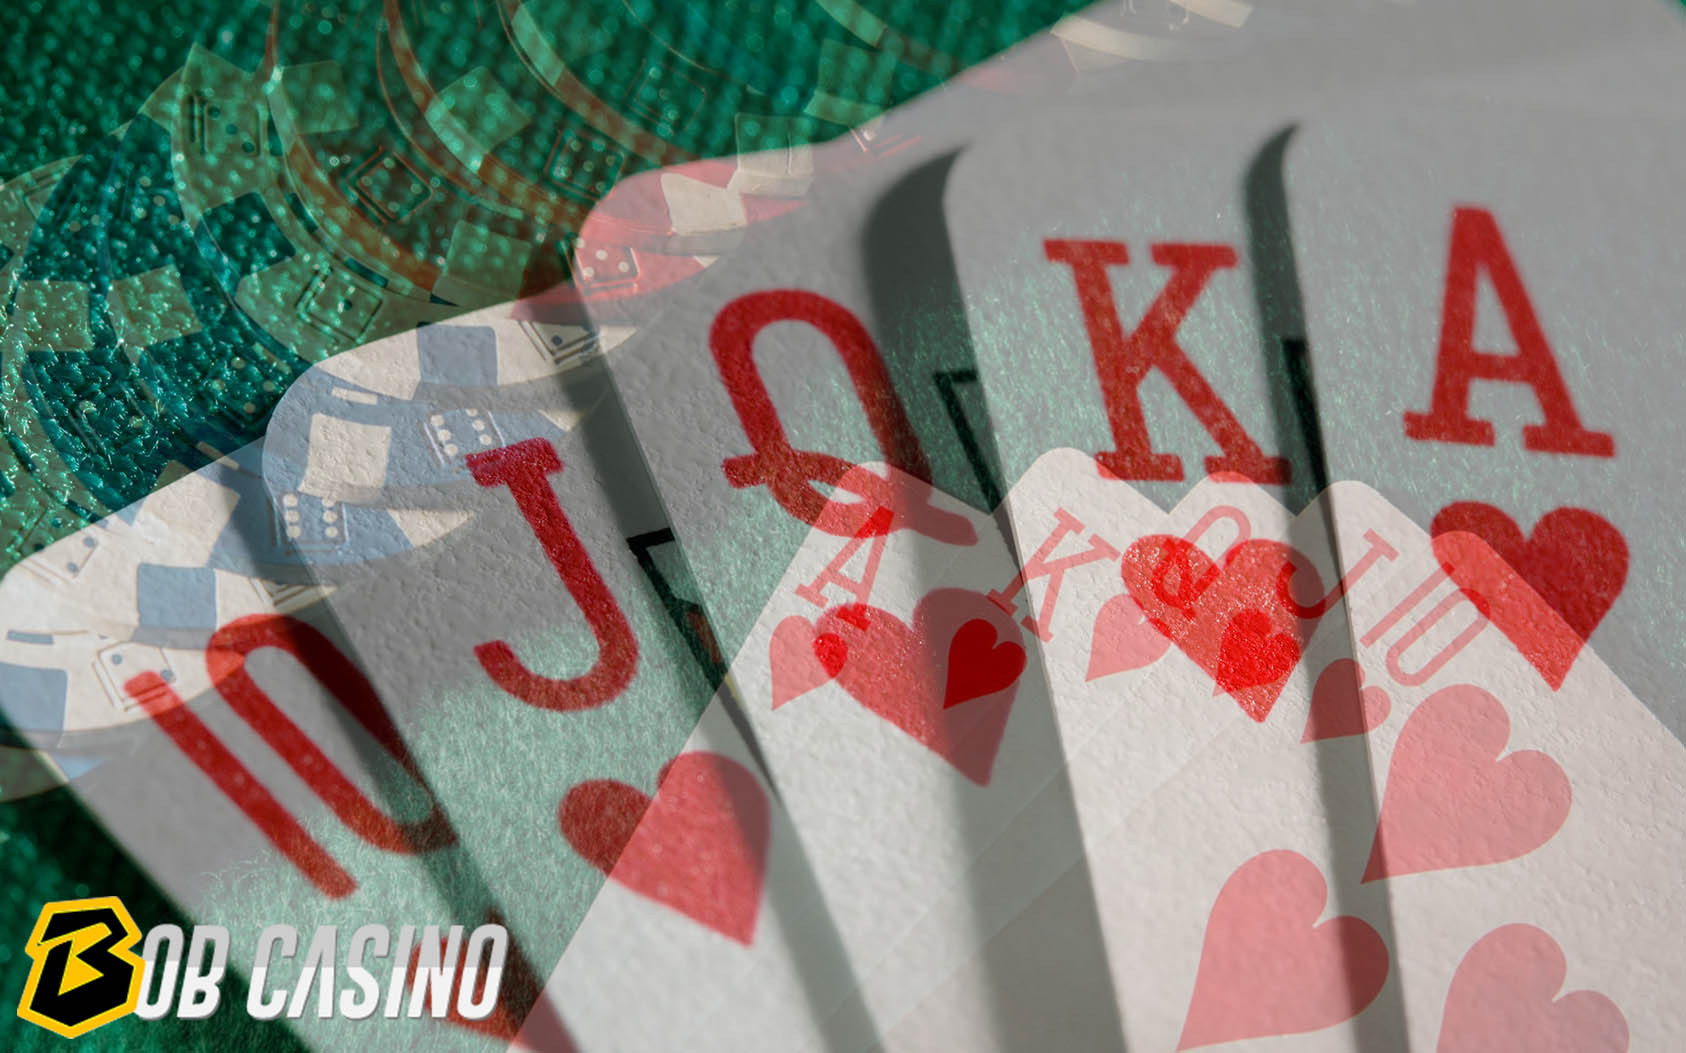 5 cards in the same suit in poker